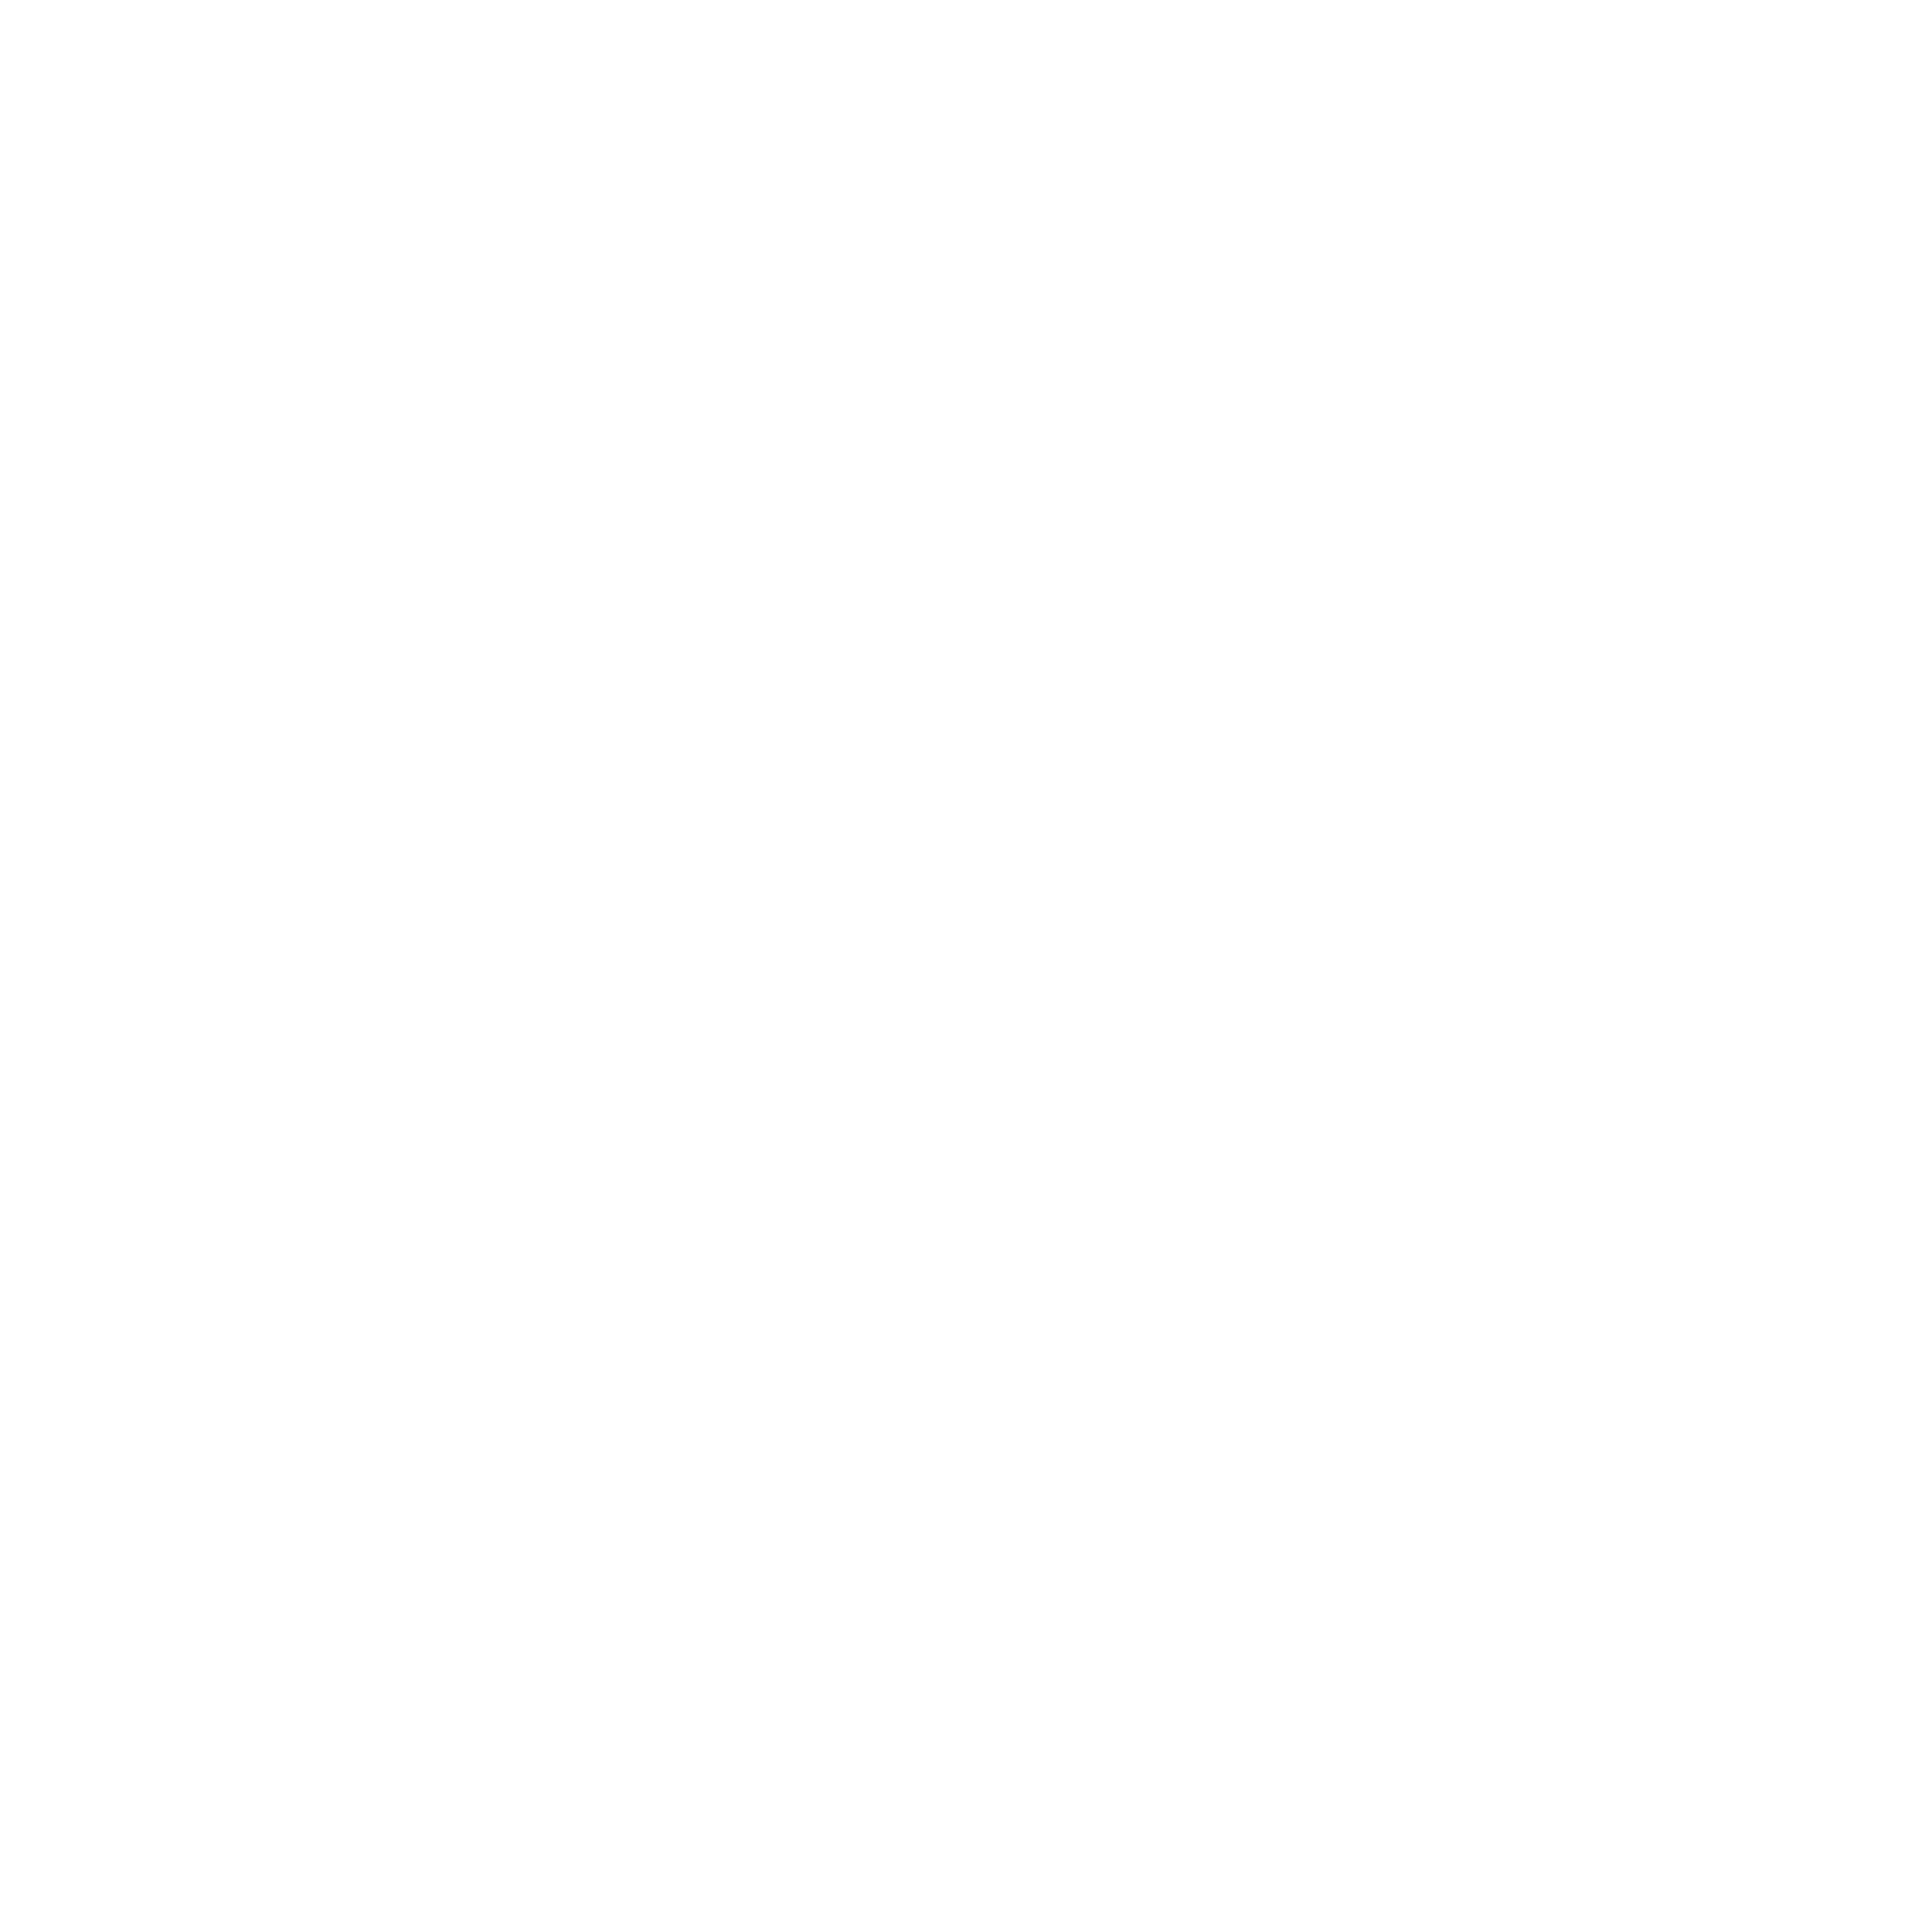 FACTORY 41